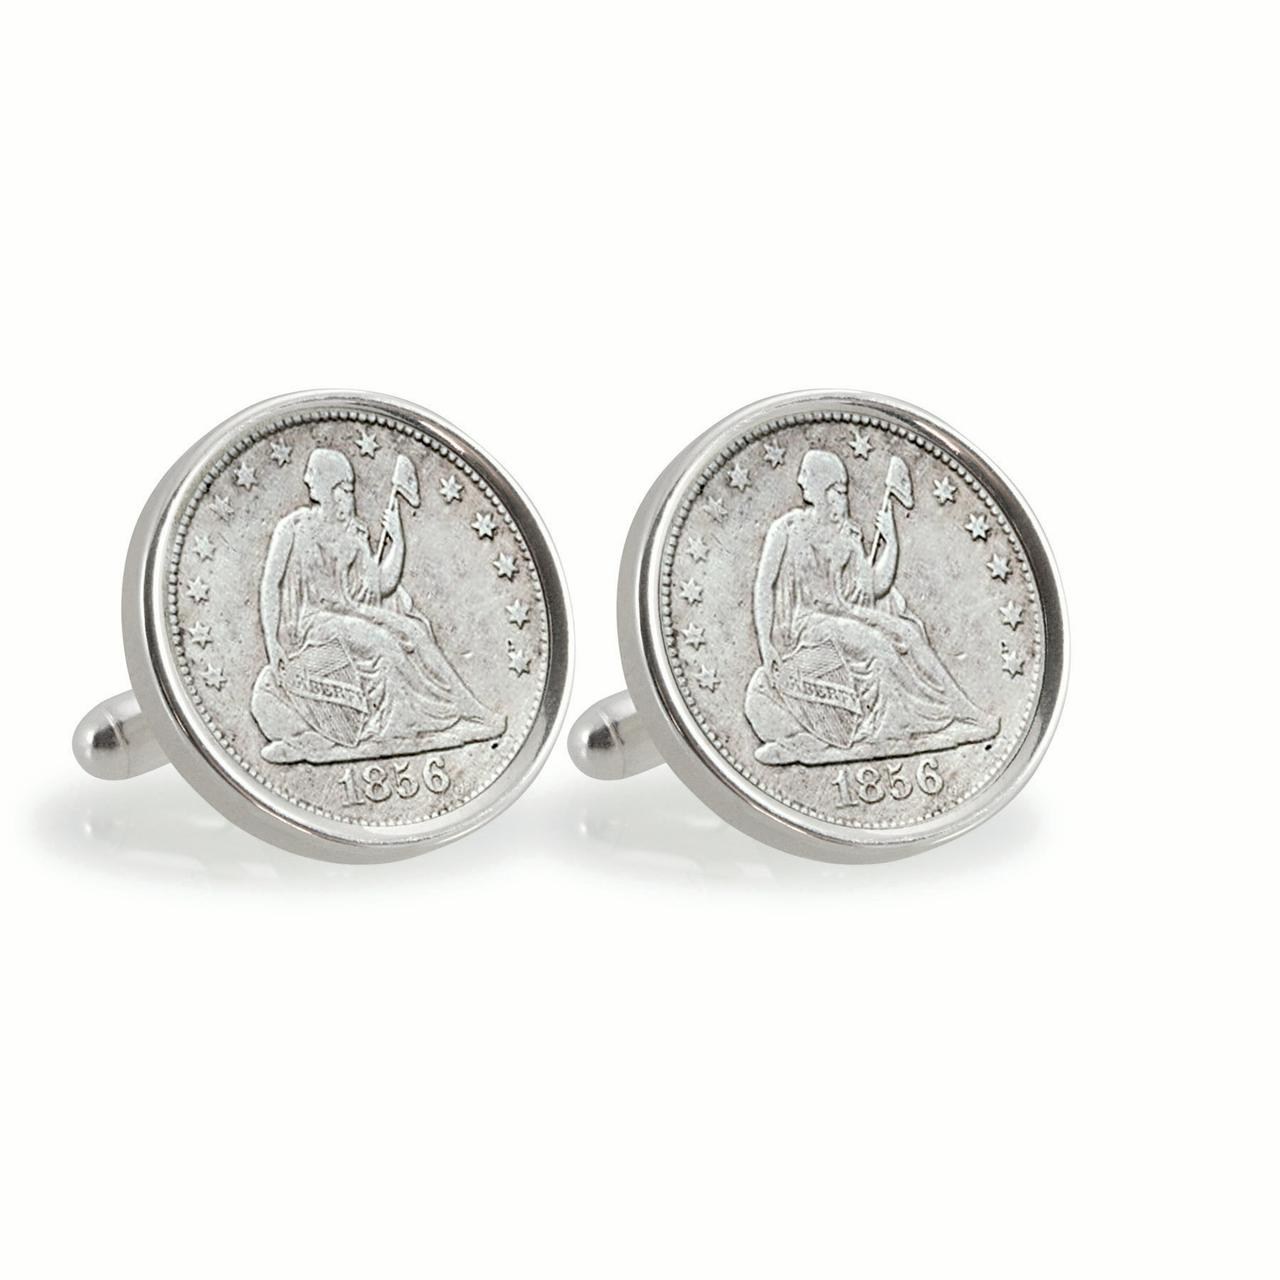 Seated Liberty Silver Dime Sterling Silver Coin Cuff Links